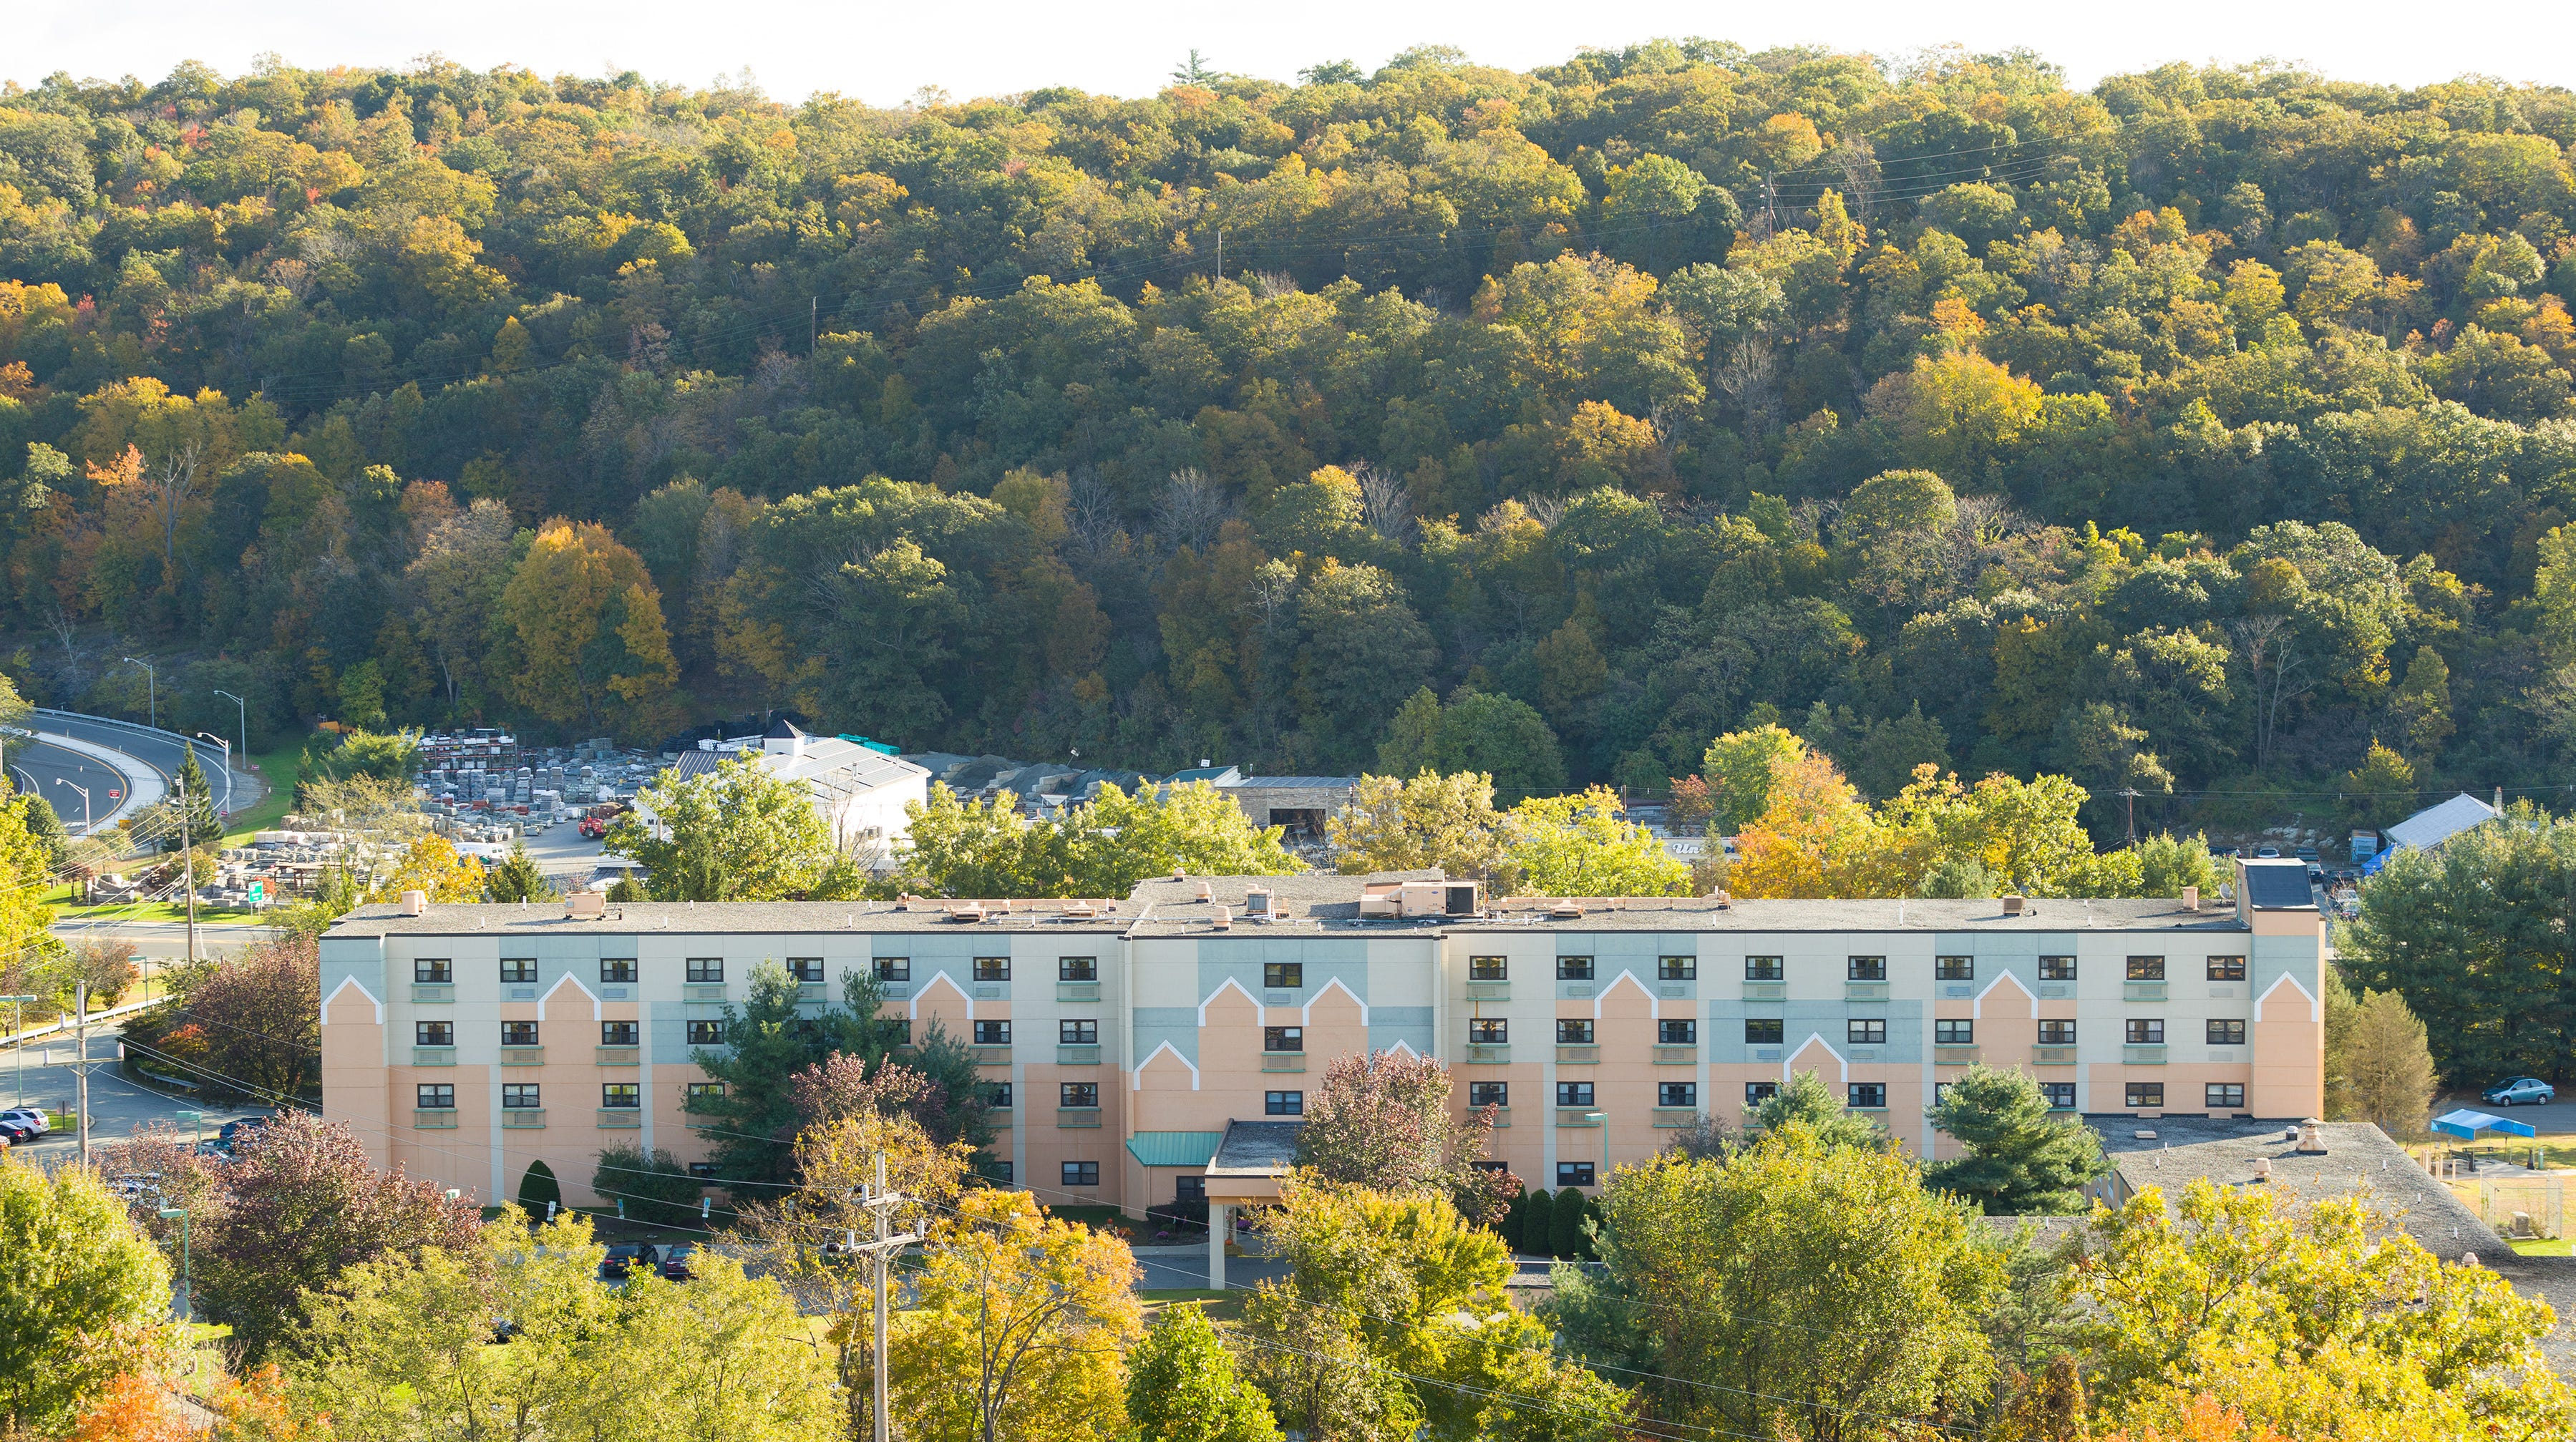 Adenovirus outbreak in Wanaque is over, but state oversight remains